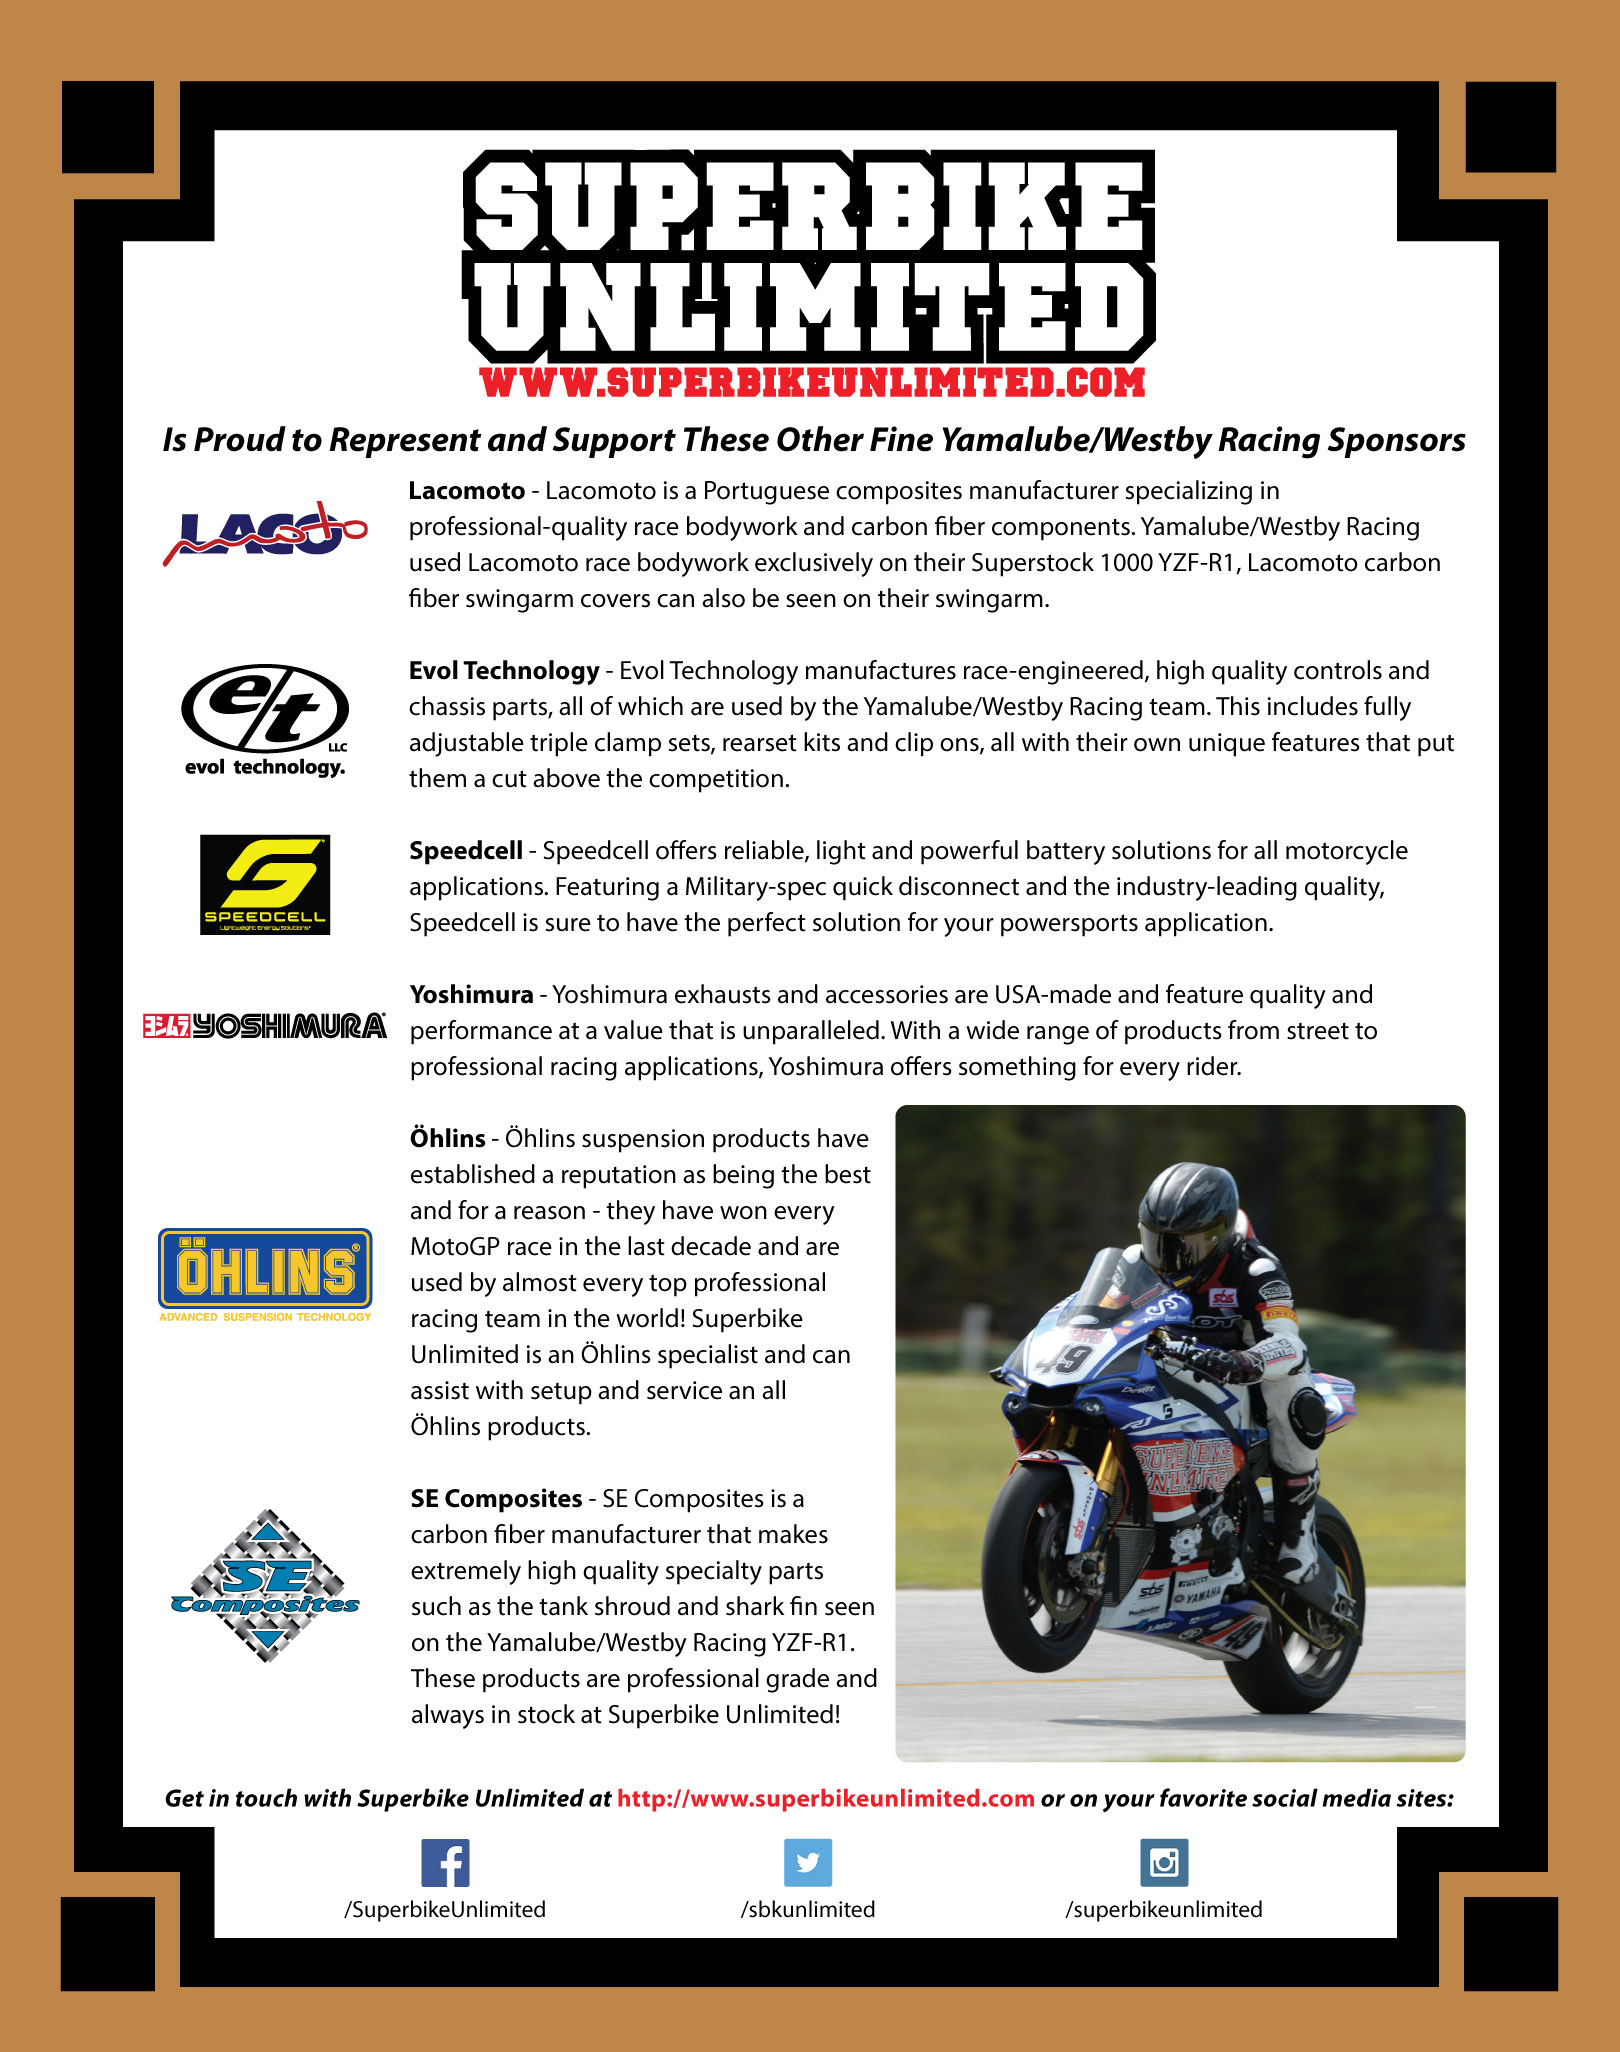 Superbike Unlimited